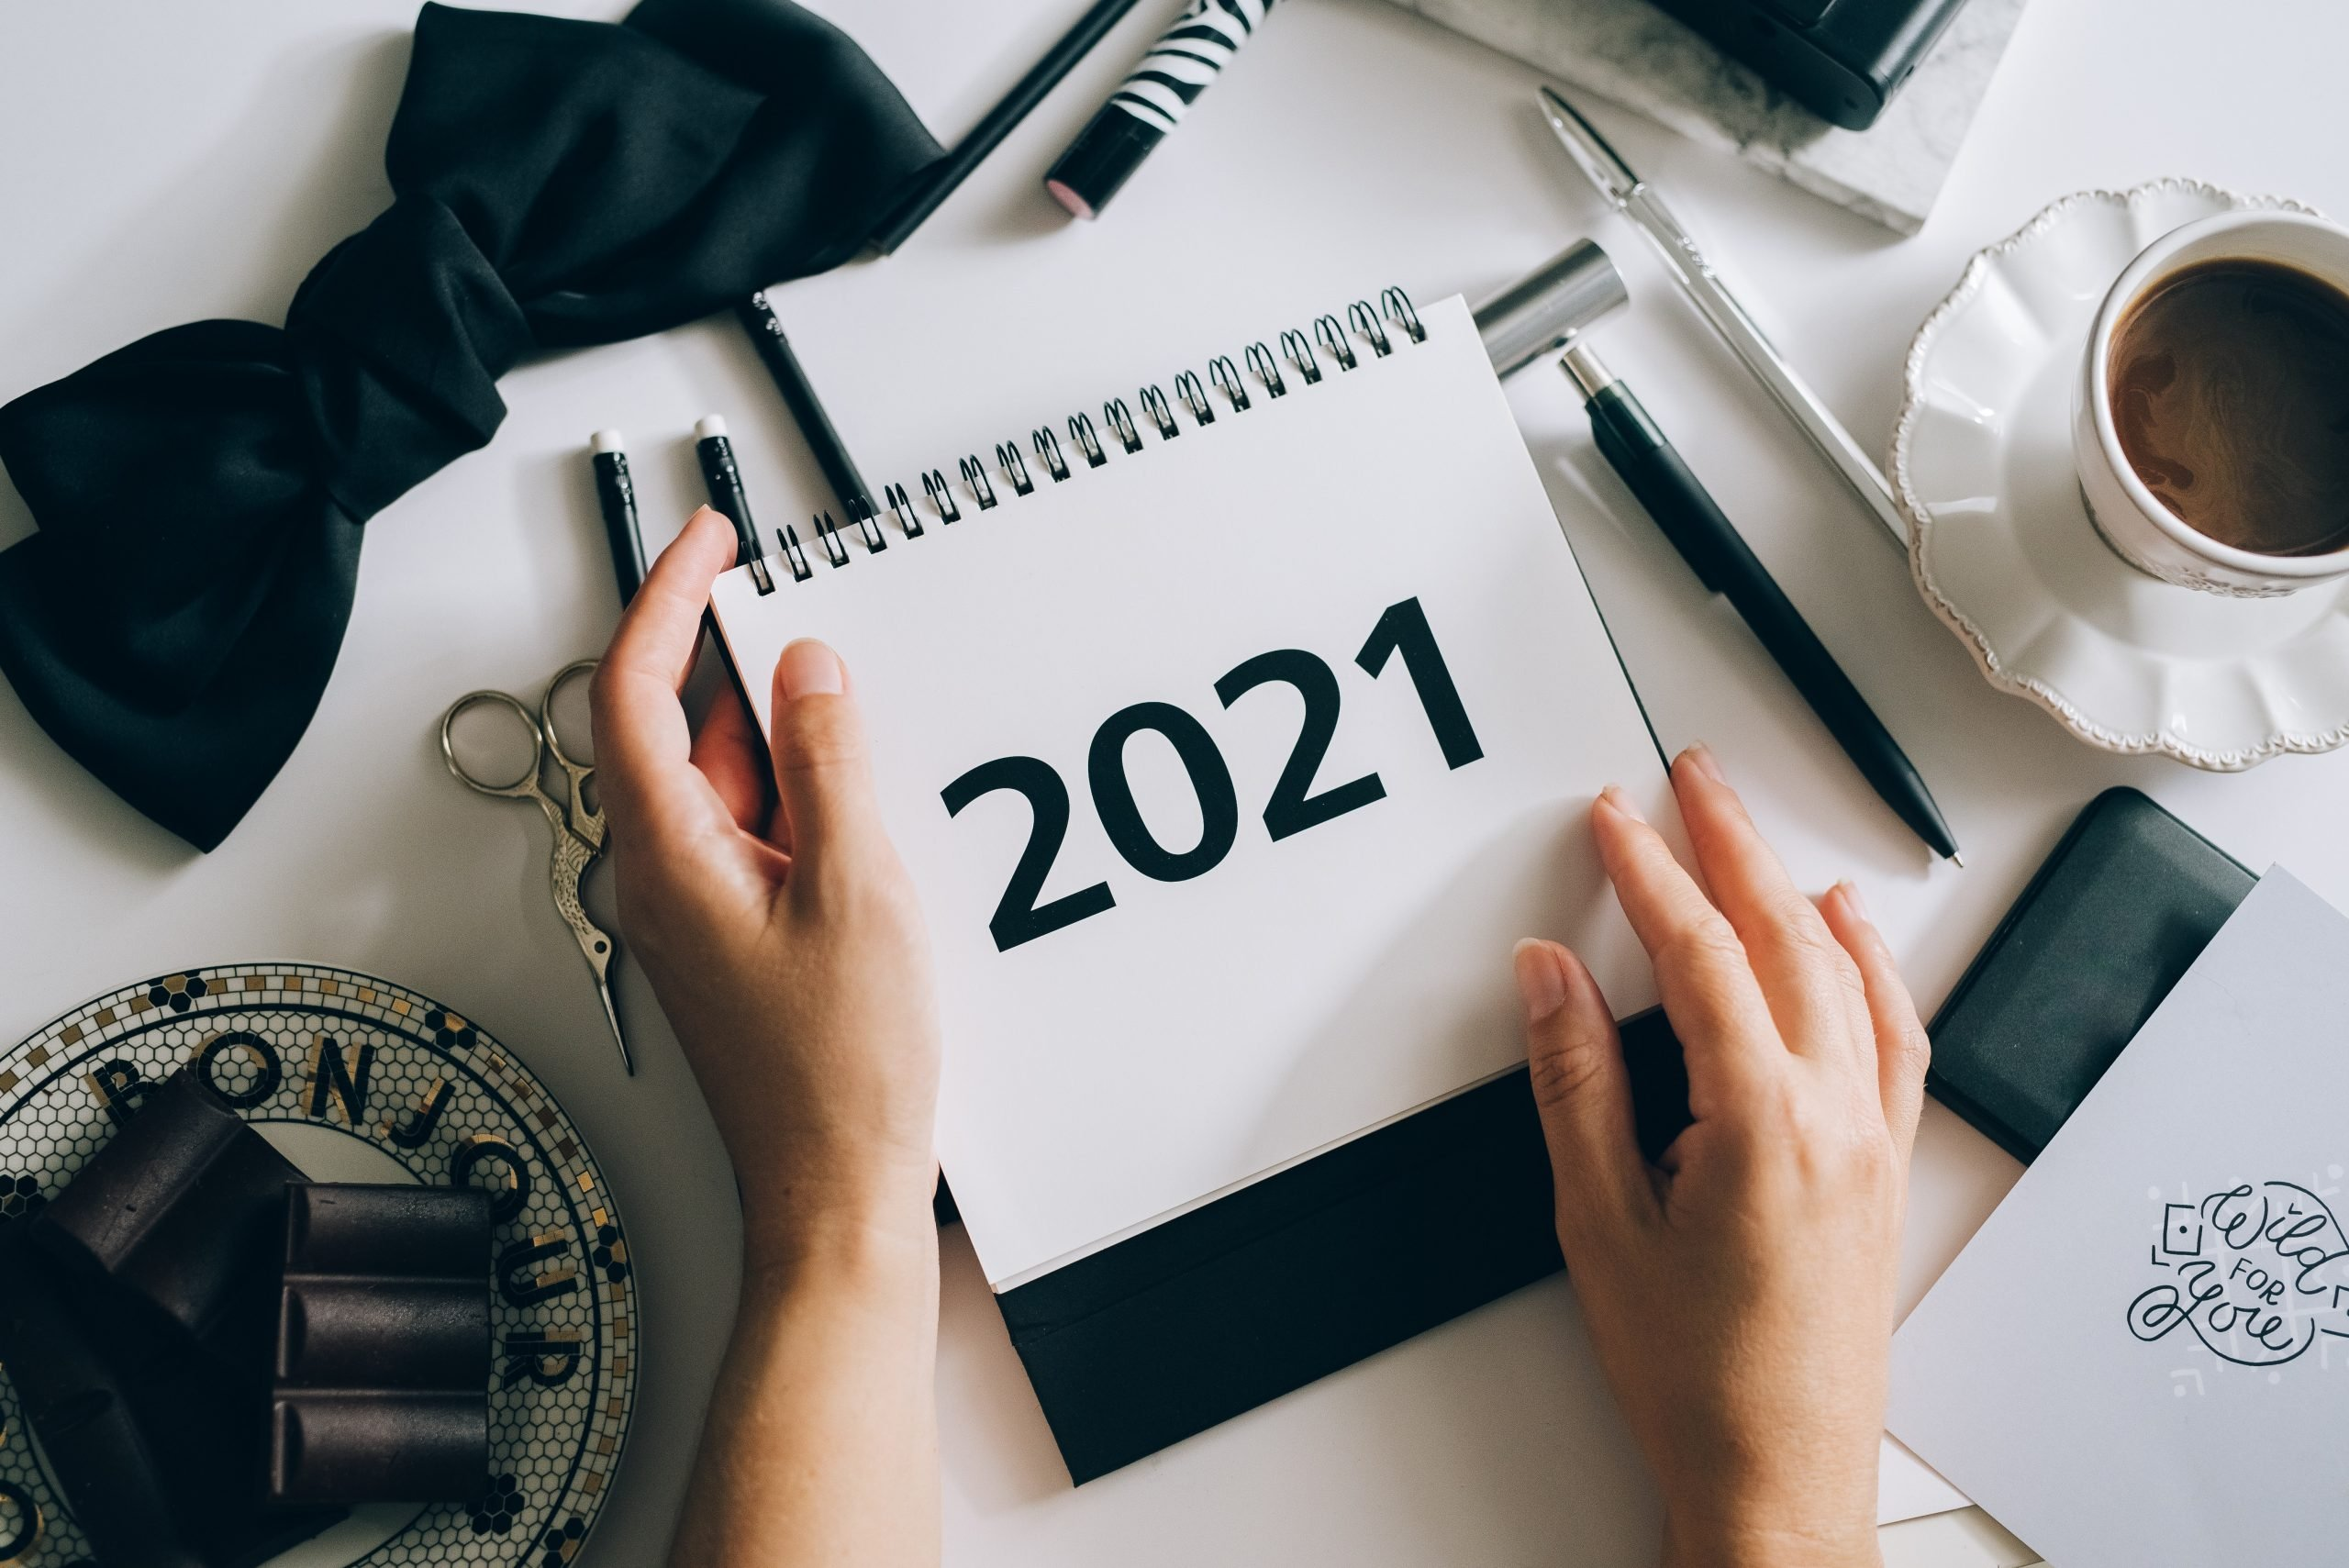 What are your 2021 Resolutions, plans or goals?